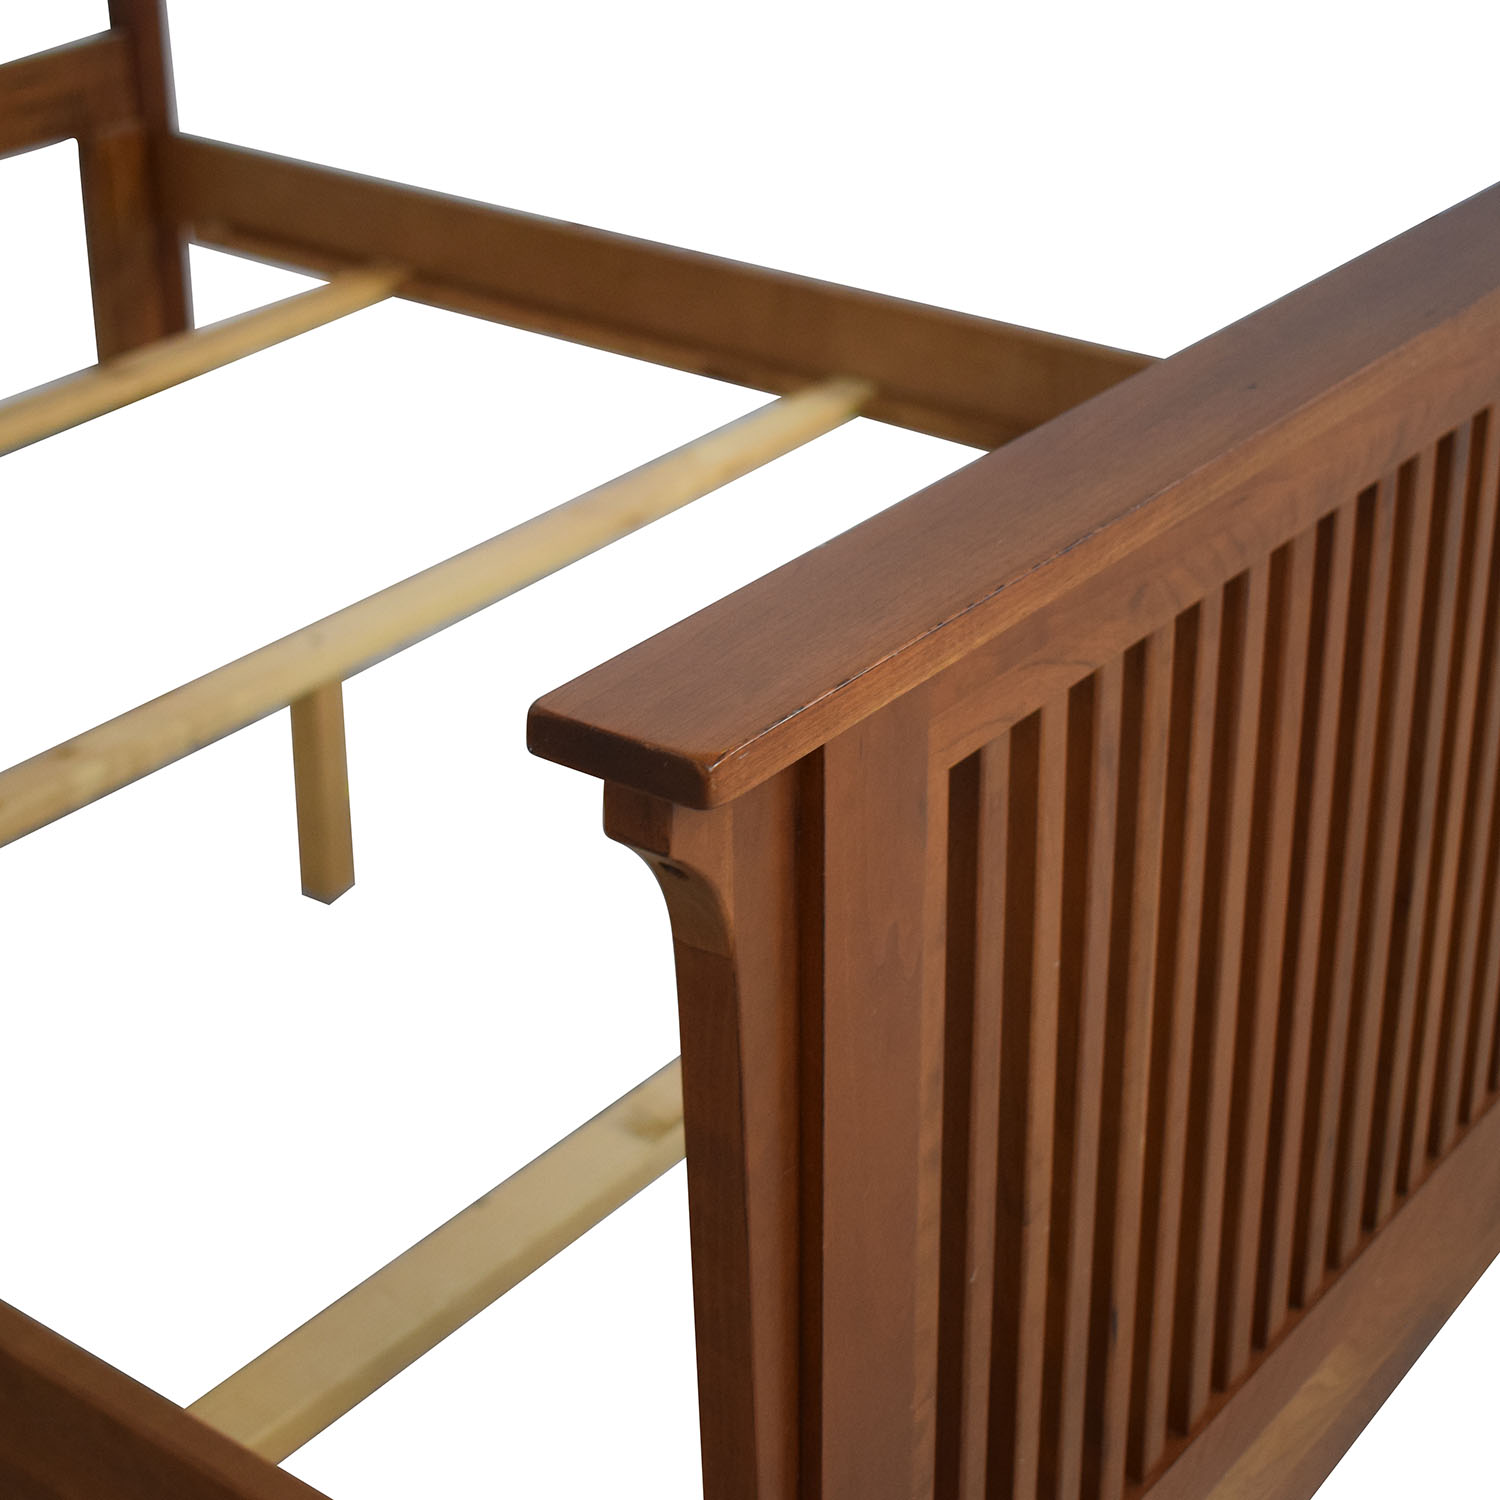 Queen Bed Frame with Headboard and Footboard second hand